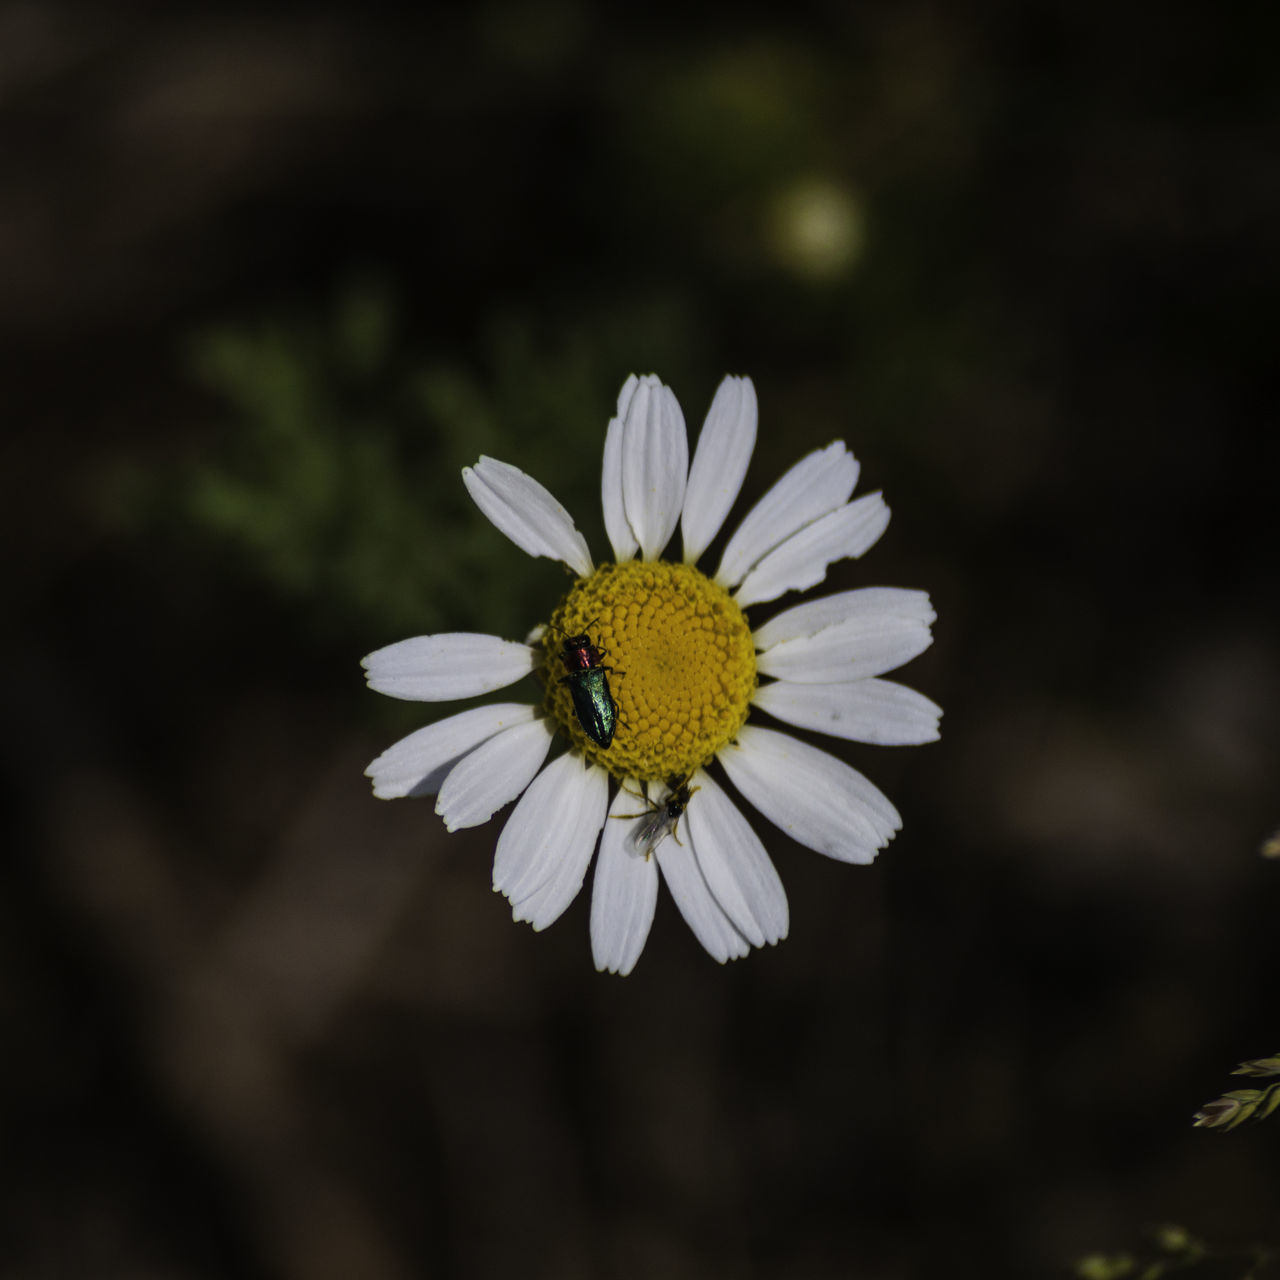 Beauty In Nature Bookeh Bug On A Flower Canonphotography Close-up Daisy Flower Flower Head Focus On Foreground Macro Nature No People Outdoors Plant Pollen Selective Focus Sigmalens White White Color Yellow